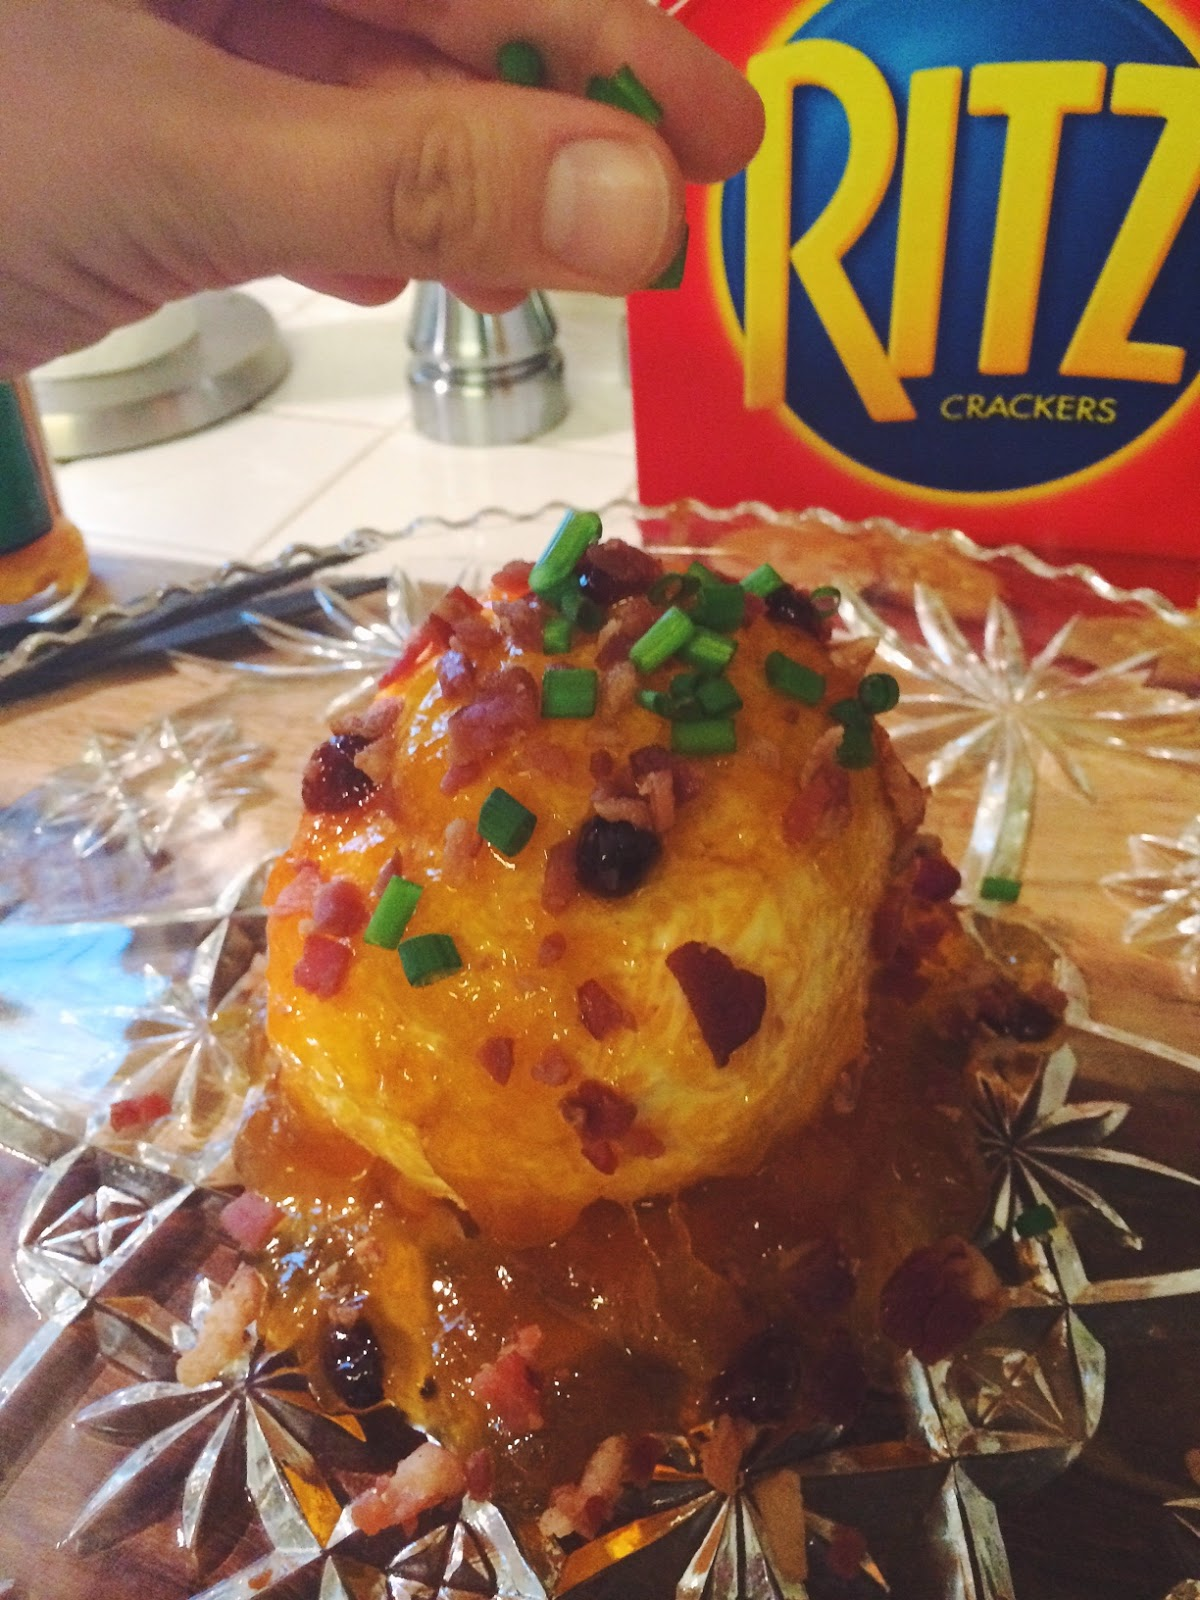 Chutney Bacon Green Onion Cheese Ball Recipe Trendy in Texas